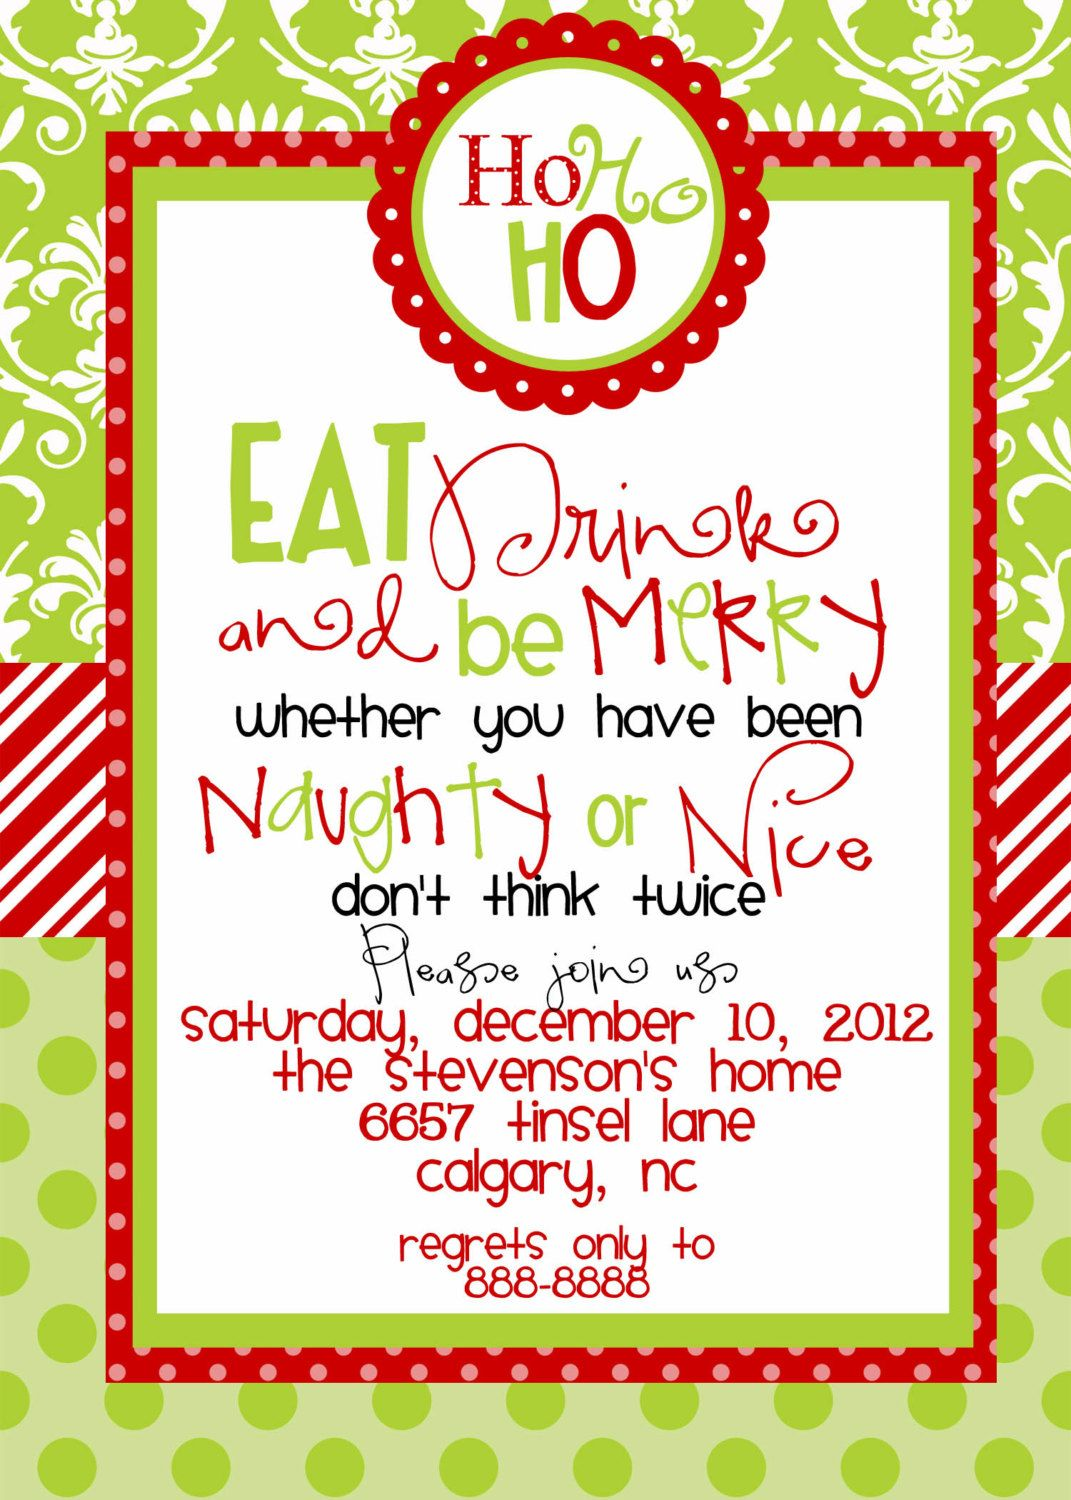 Christmas invitations templates free zlatan. Fontanacountryinn. Com.